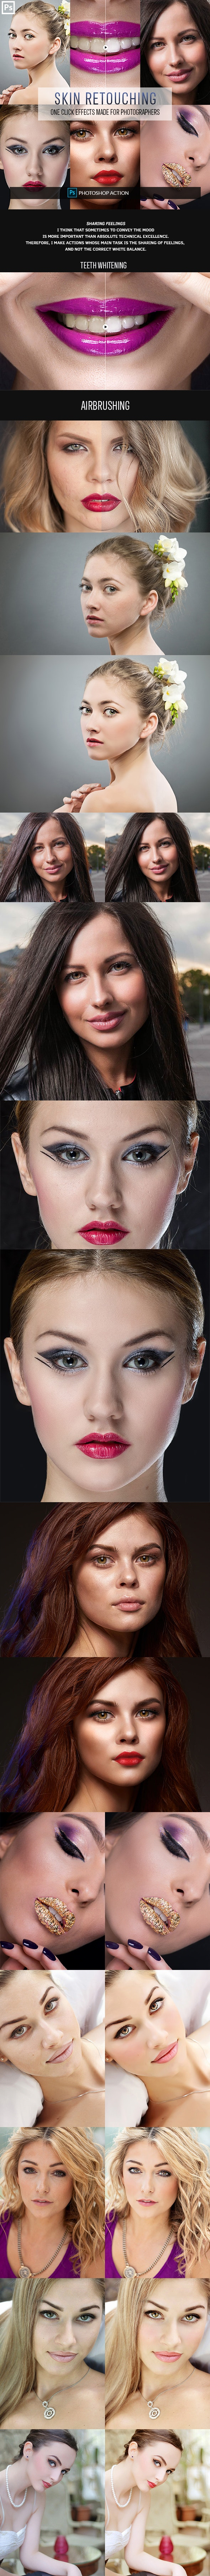 Easy Skin Retouch Photoshop Actions 2 - Actions Photoshop